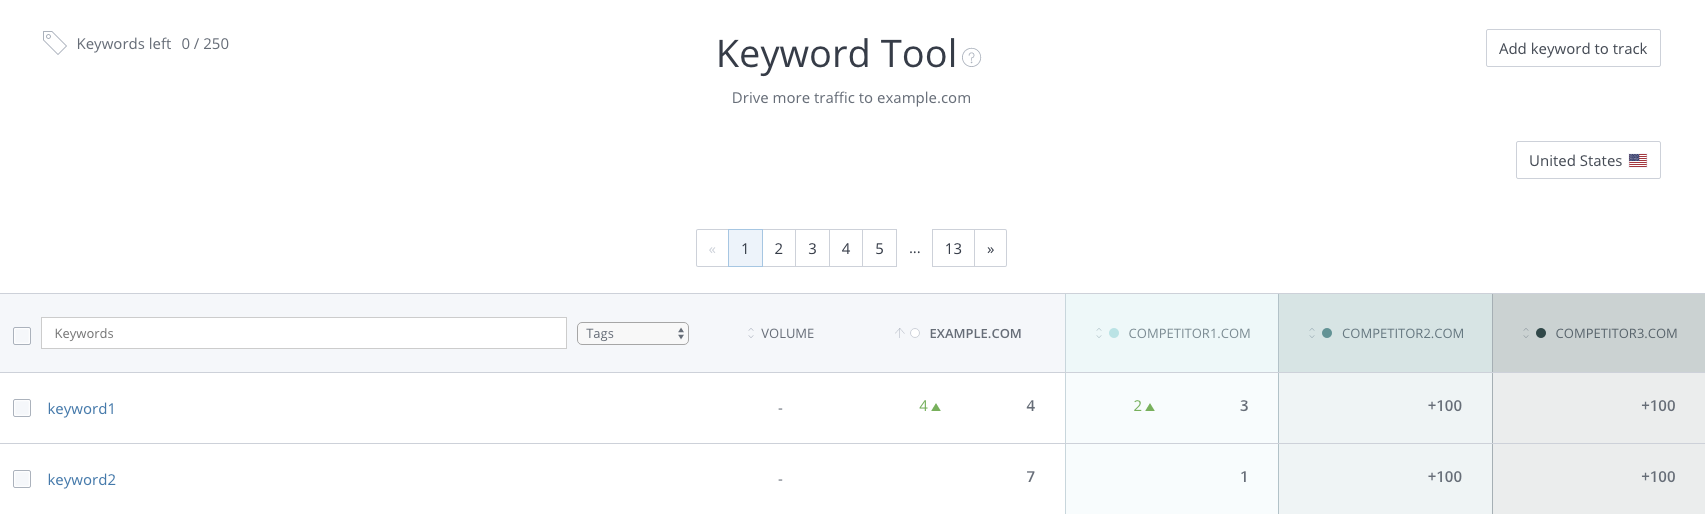 WooRank Keyword Tool competitor tracking